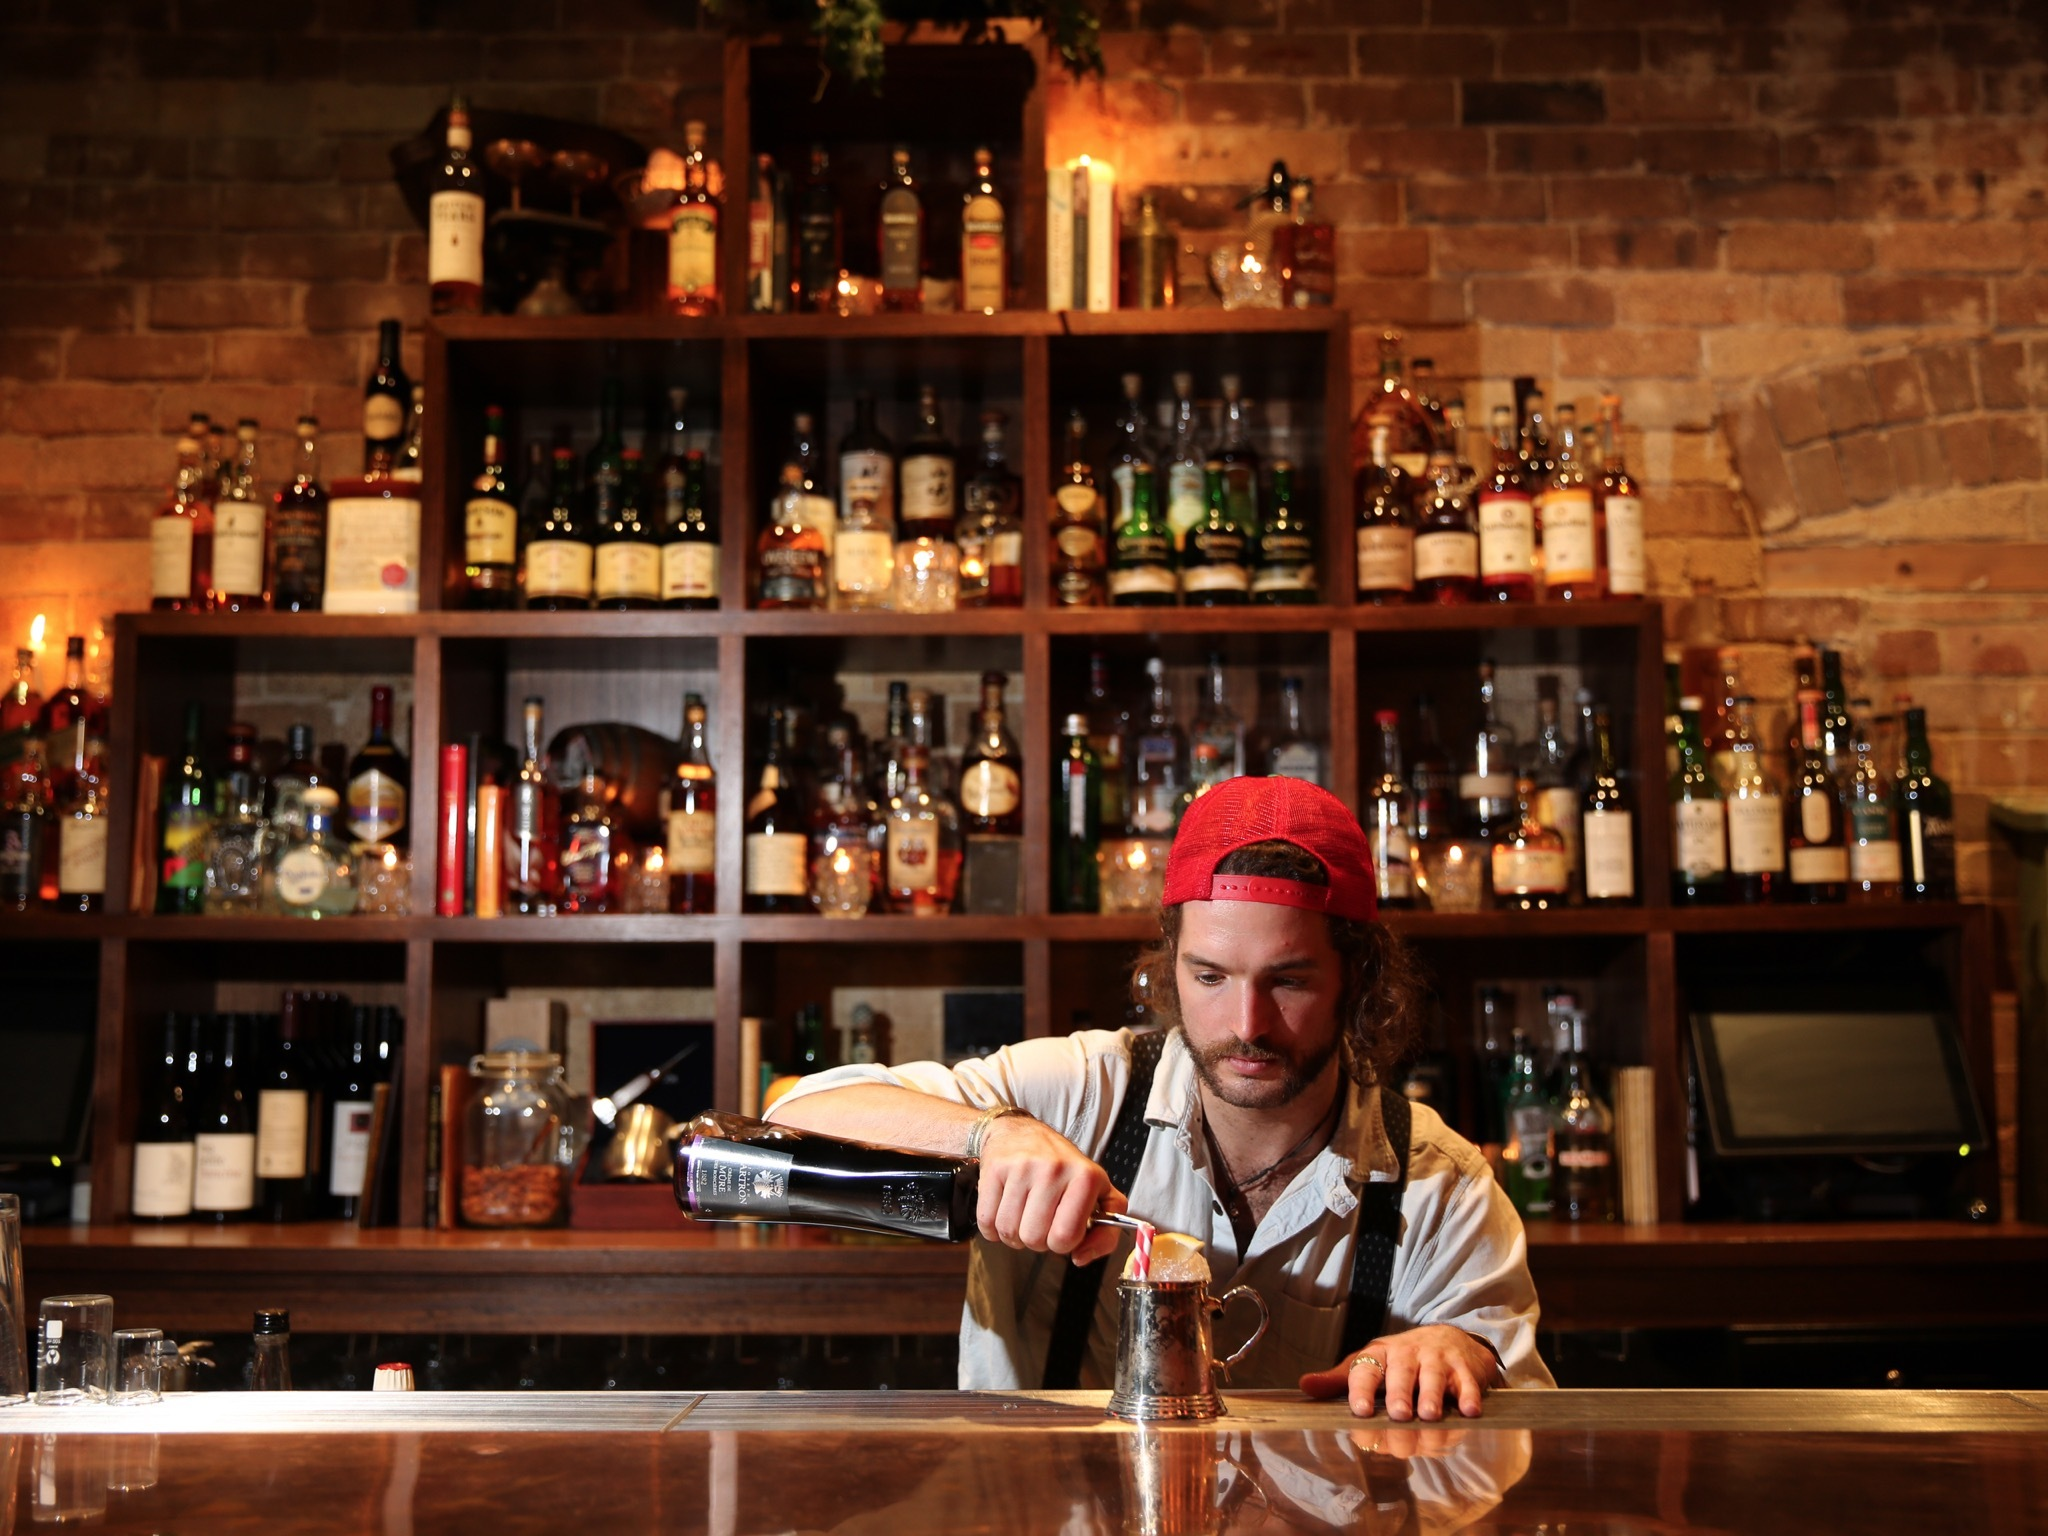 A bartender behind the bar at The Wild Rover wearing a backwards